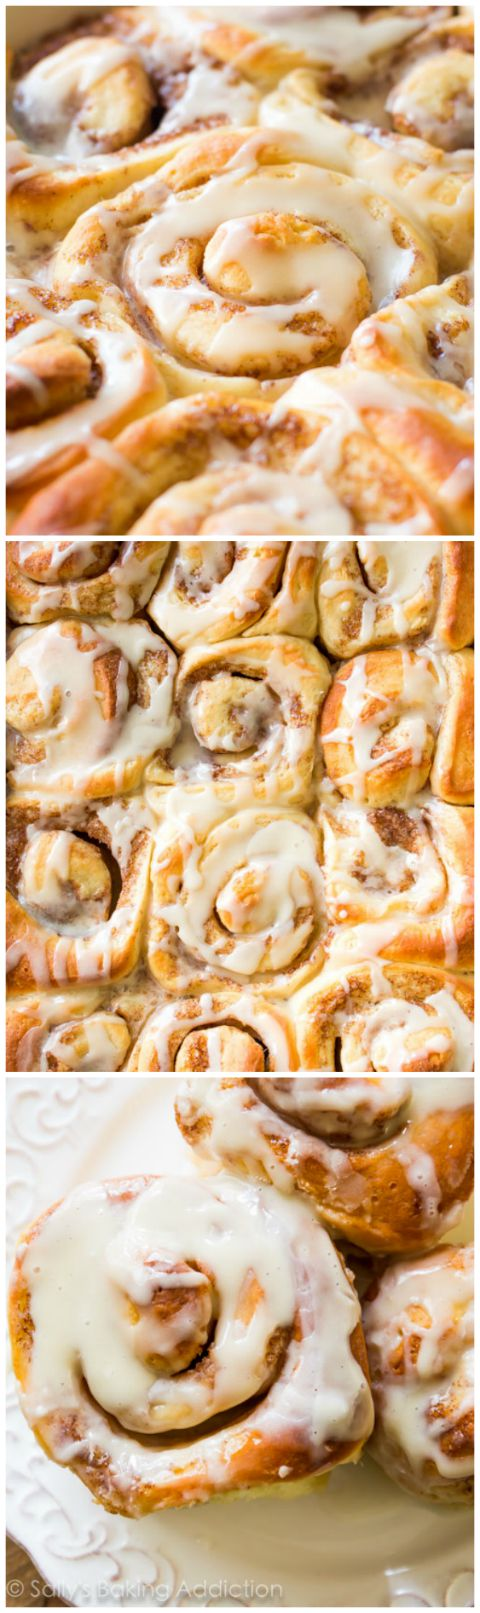 Here's how to make a huge pan of melt-in-your-mouth maple cinnamon rolls. We all love this simple make-ahead recipe!